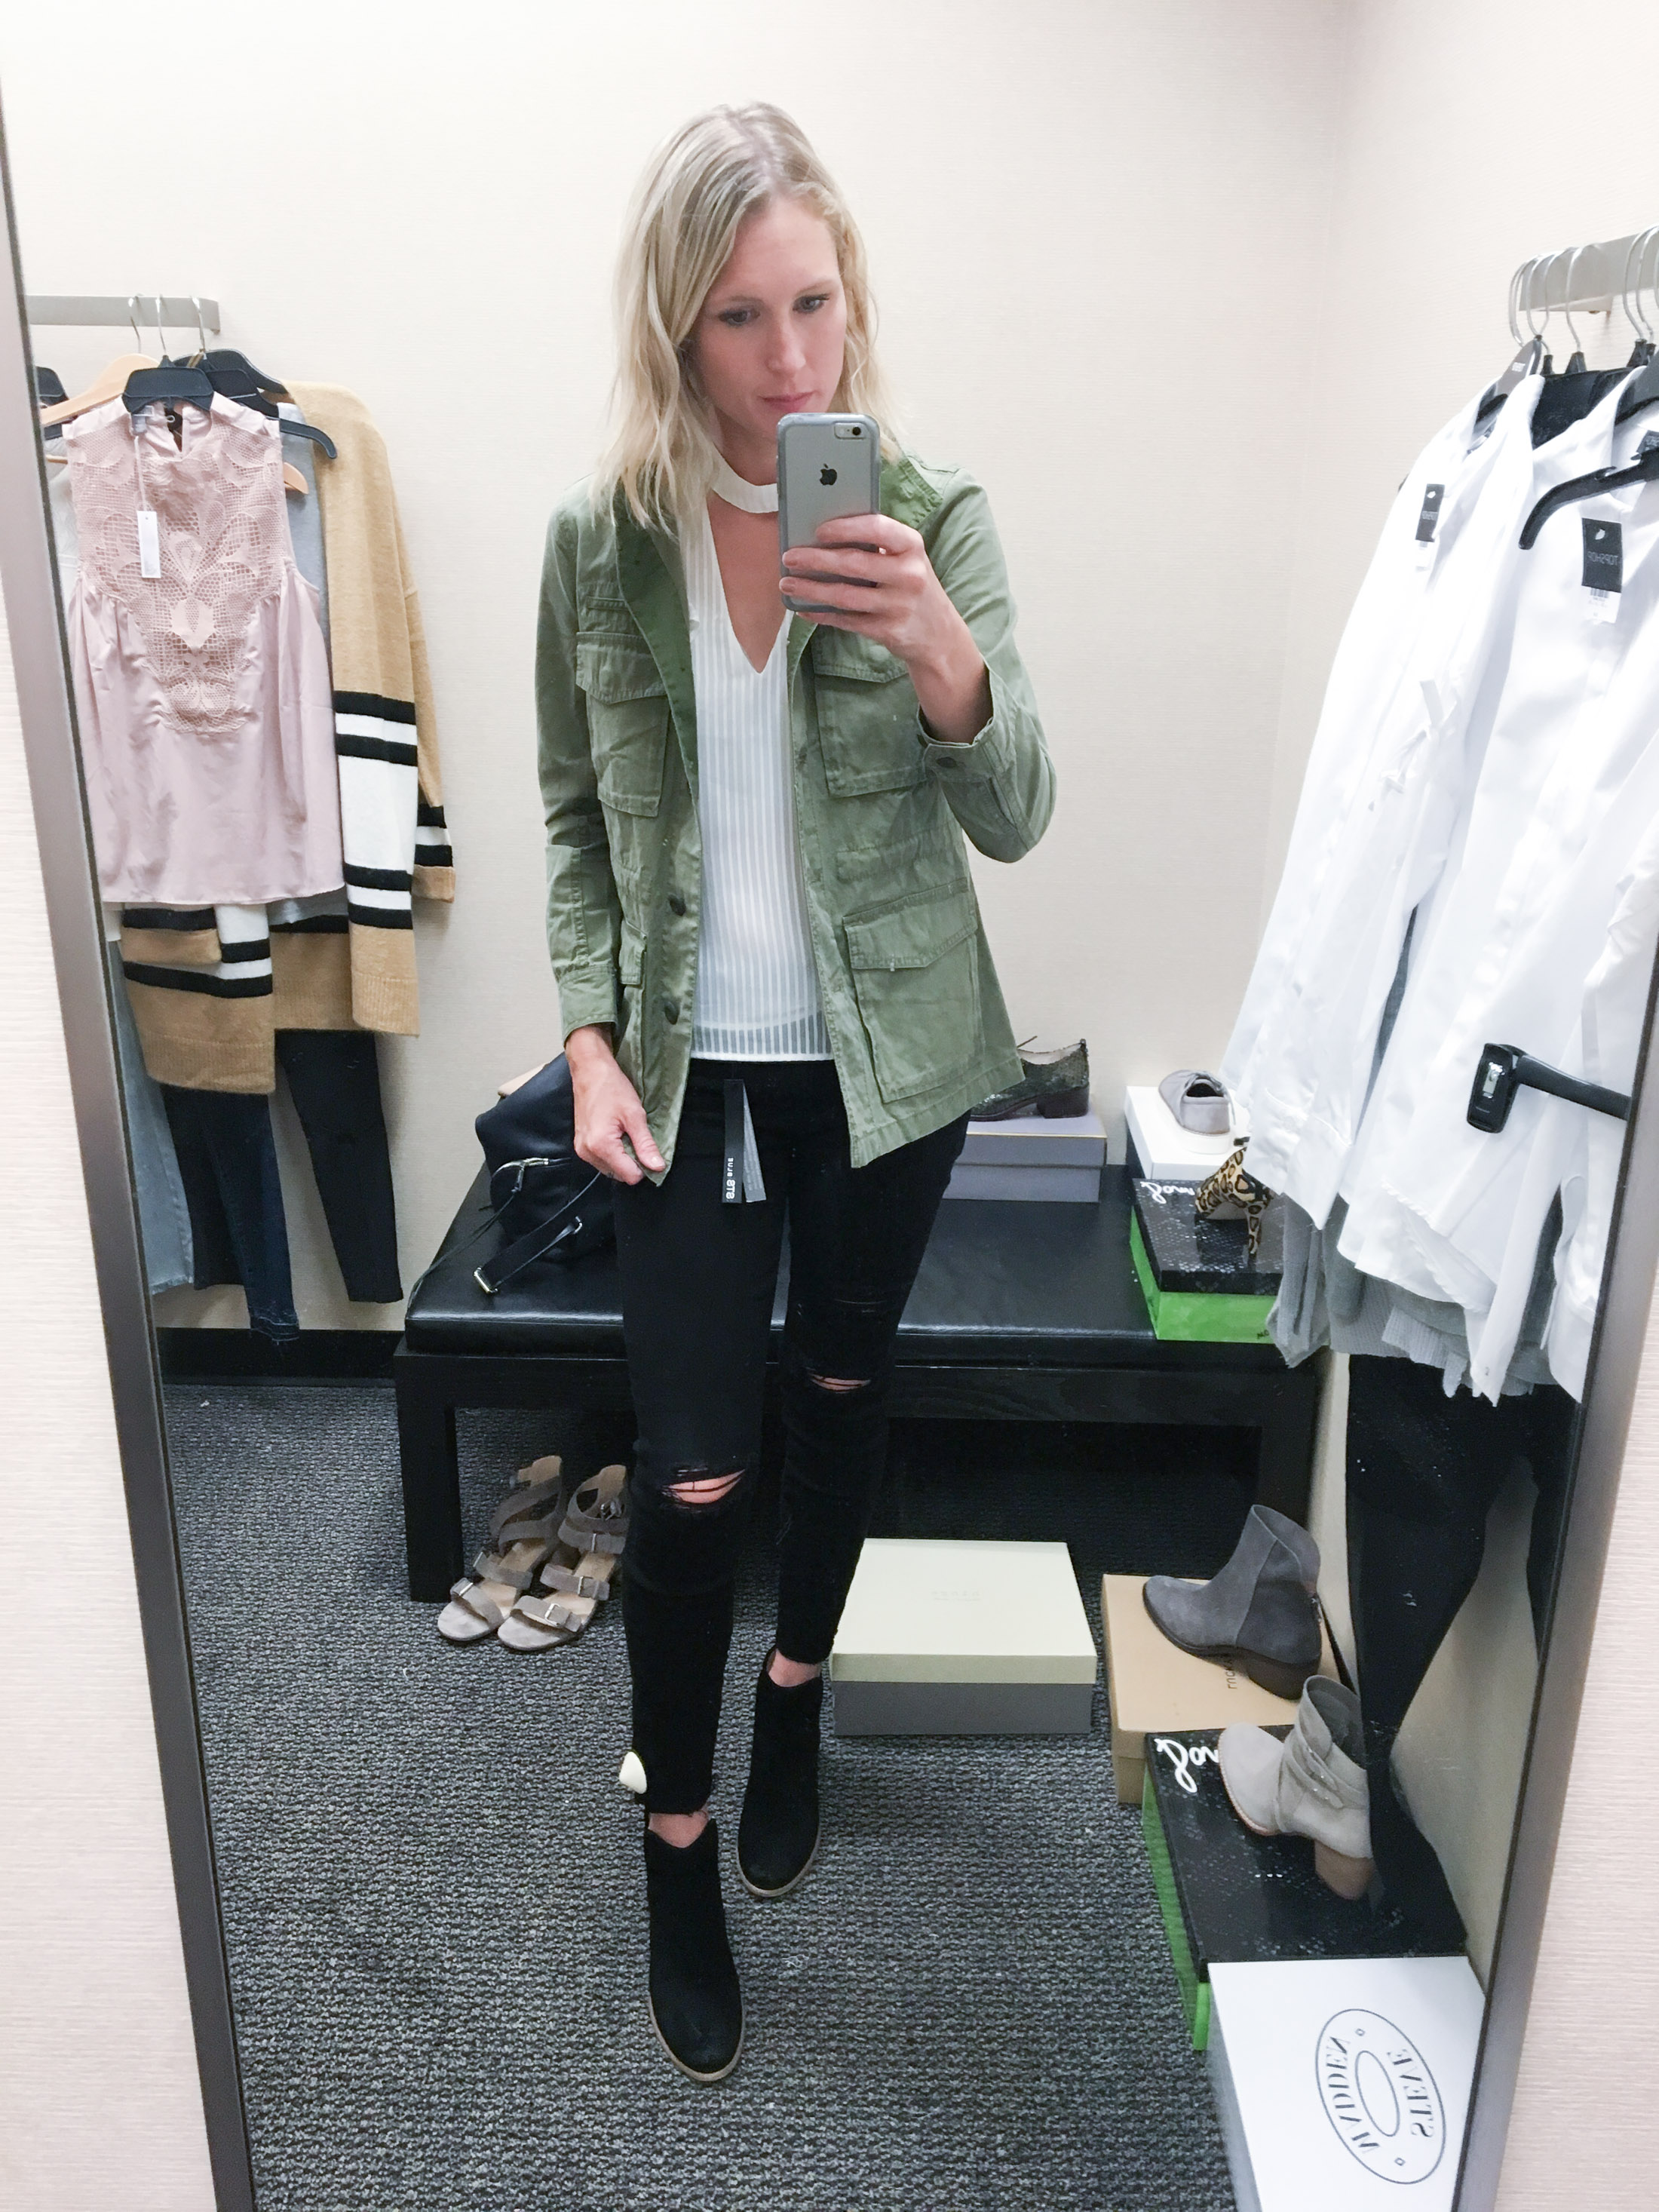 pretty top with utililty jacket